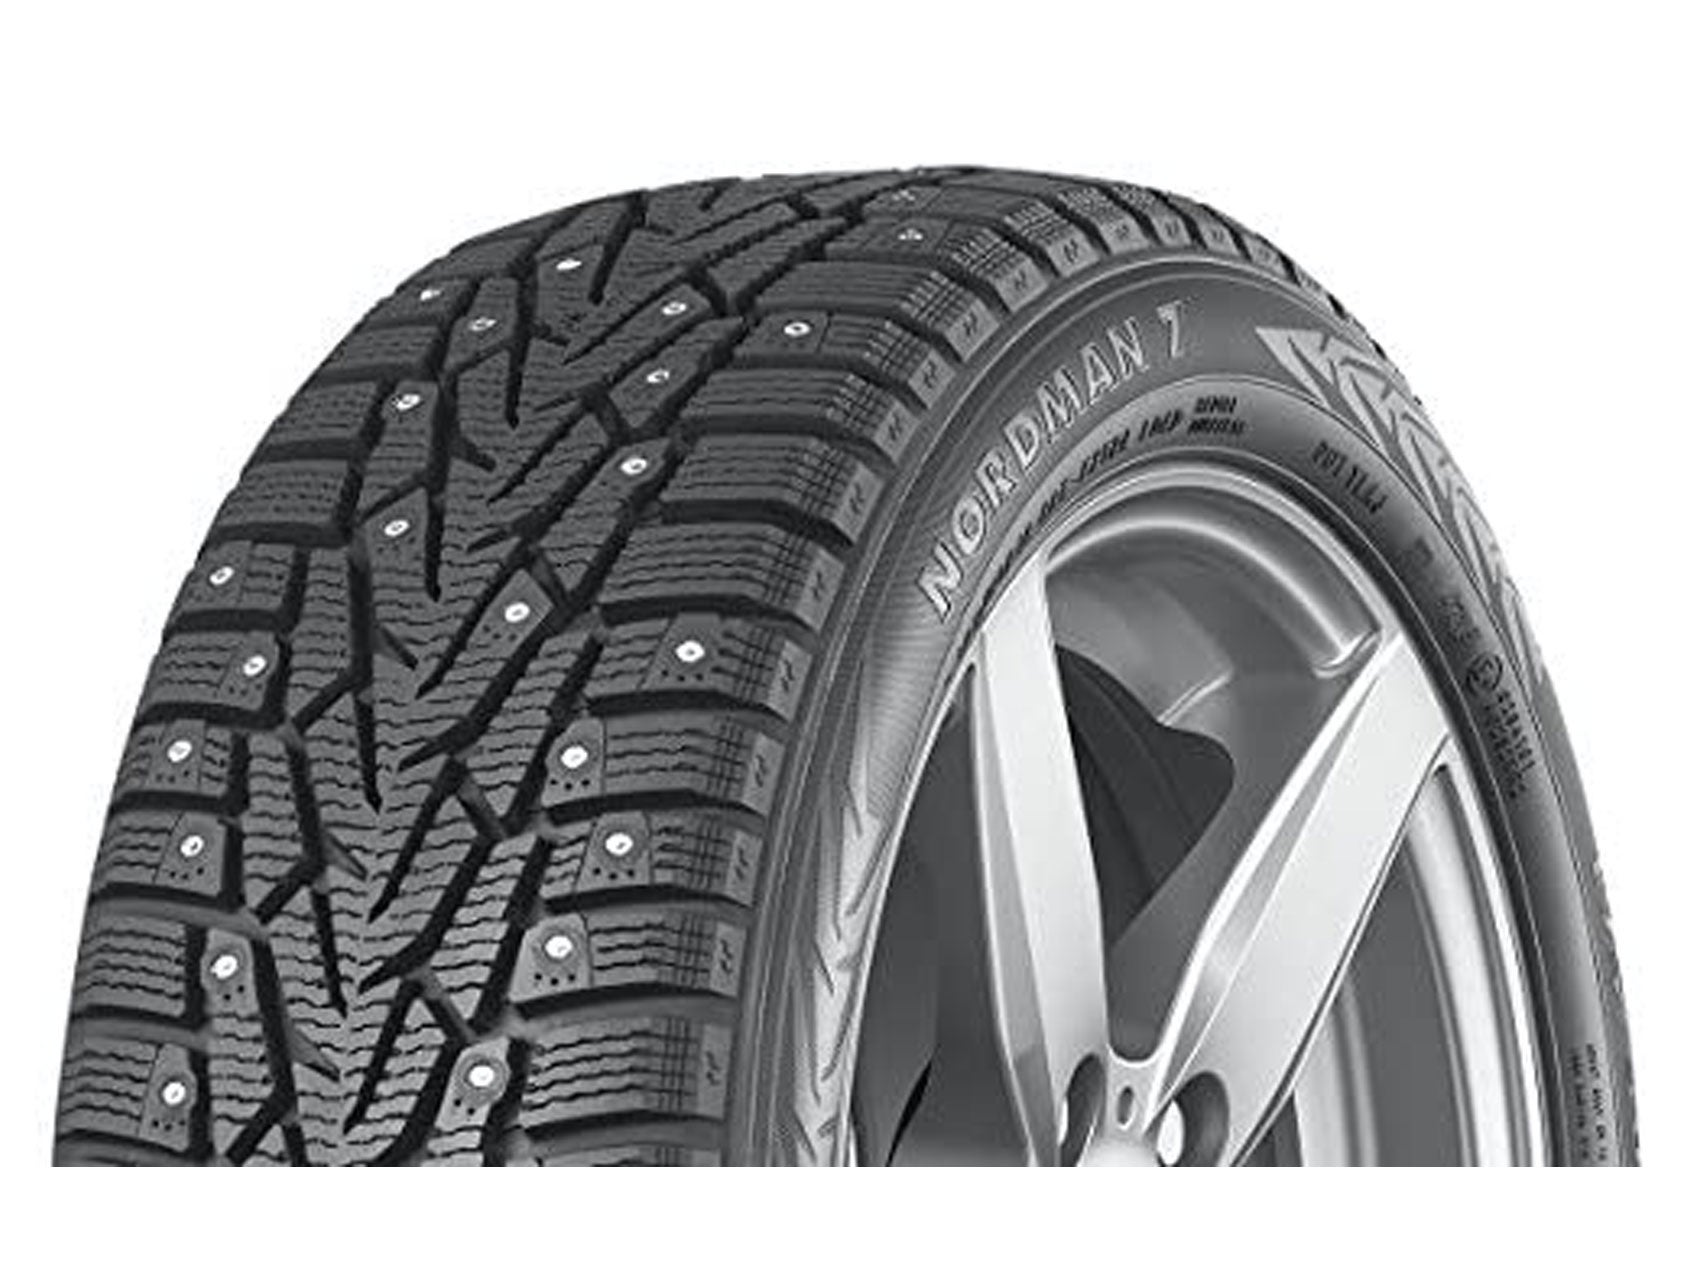 Nokian Nordman 7 Studded Winter Tire are some of the best snow tires.